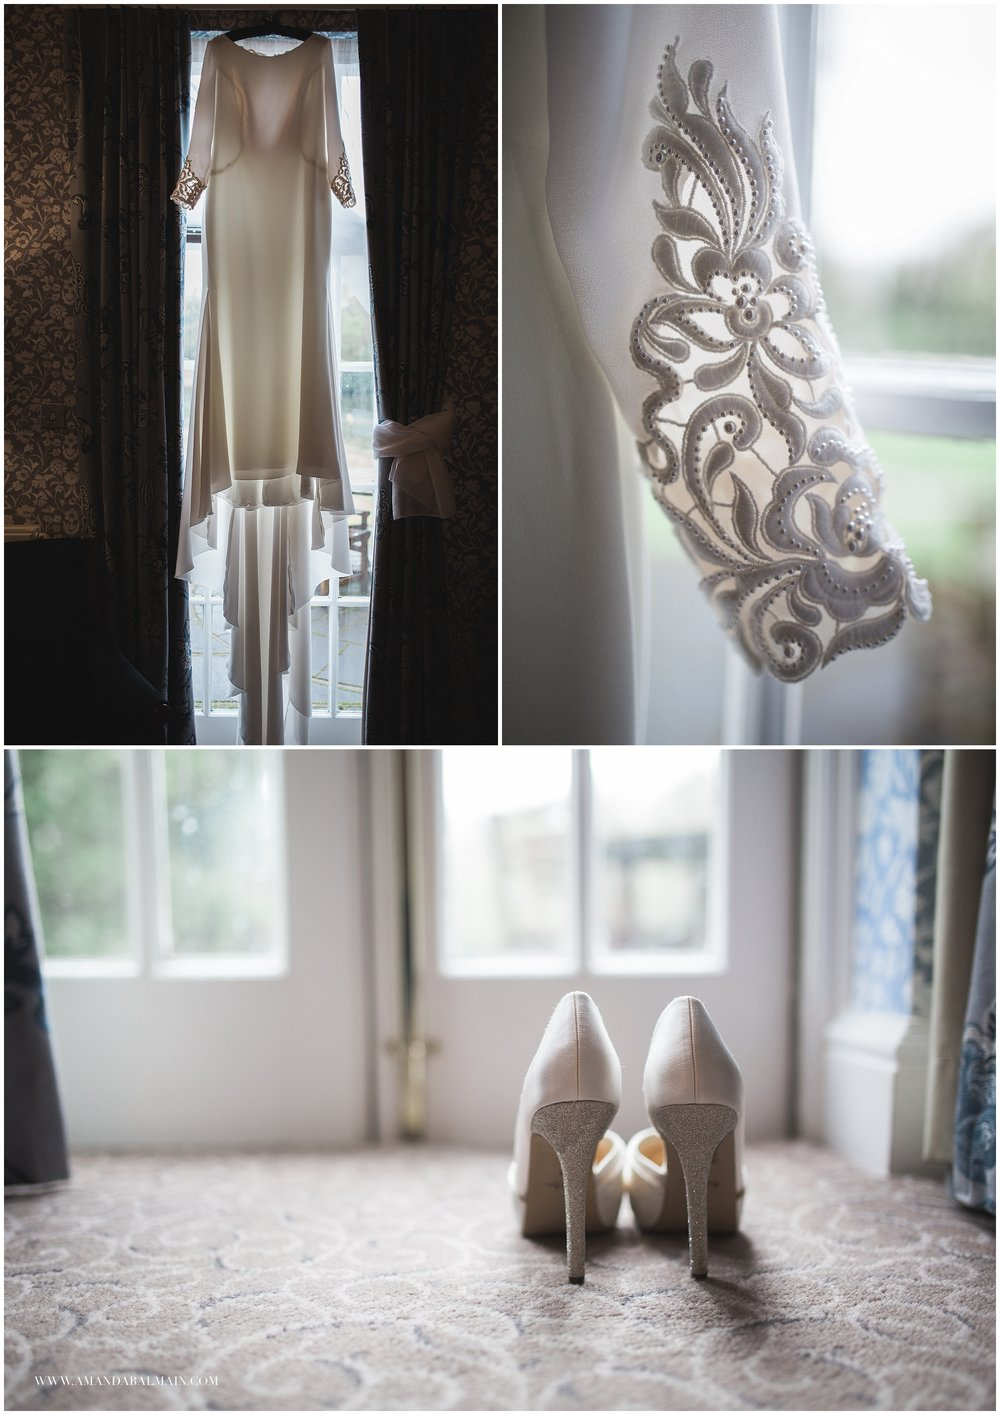 Cathy's beautiful La Sposa wedding dress and Rainbow shoes at  Mottram Hall